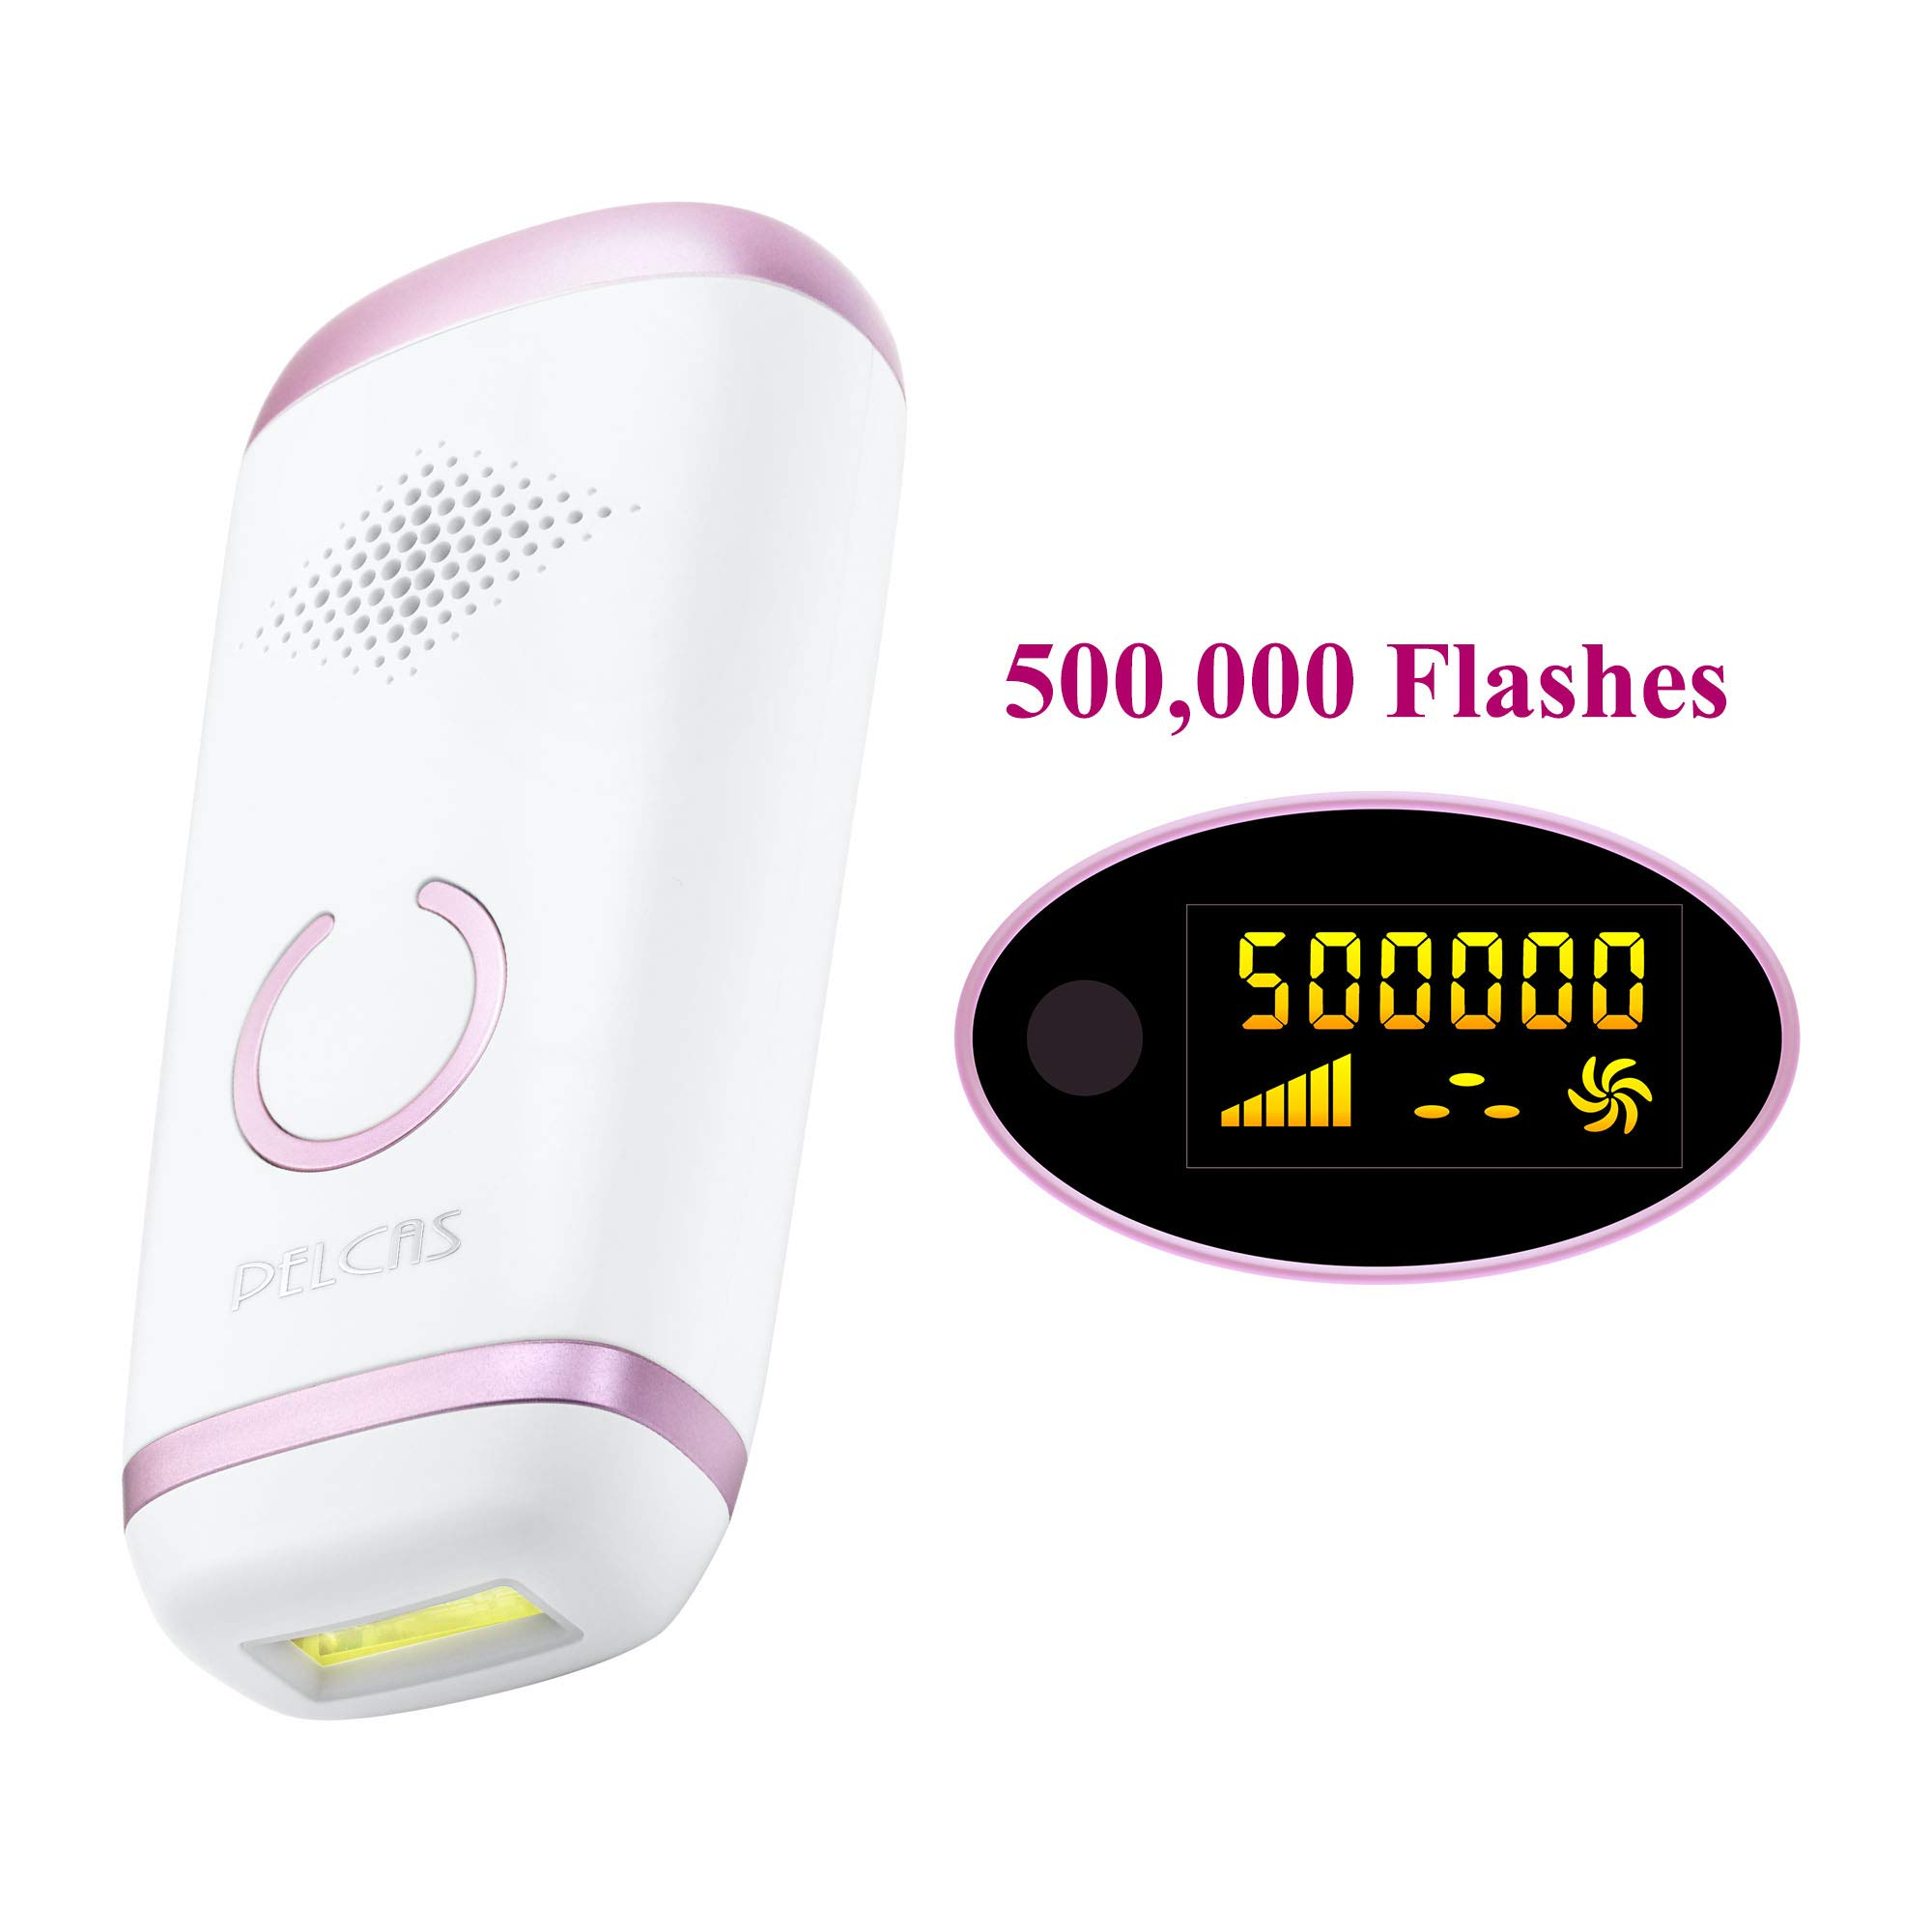 Body Permanent IPL Hair Removal System for Women, PELCAS 500,000 Flashes Painless Hair Removal Device Permanent with LCD Screen for Home Use Professional